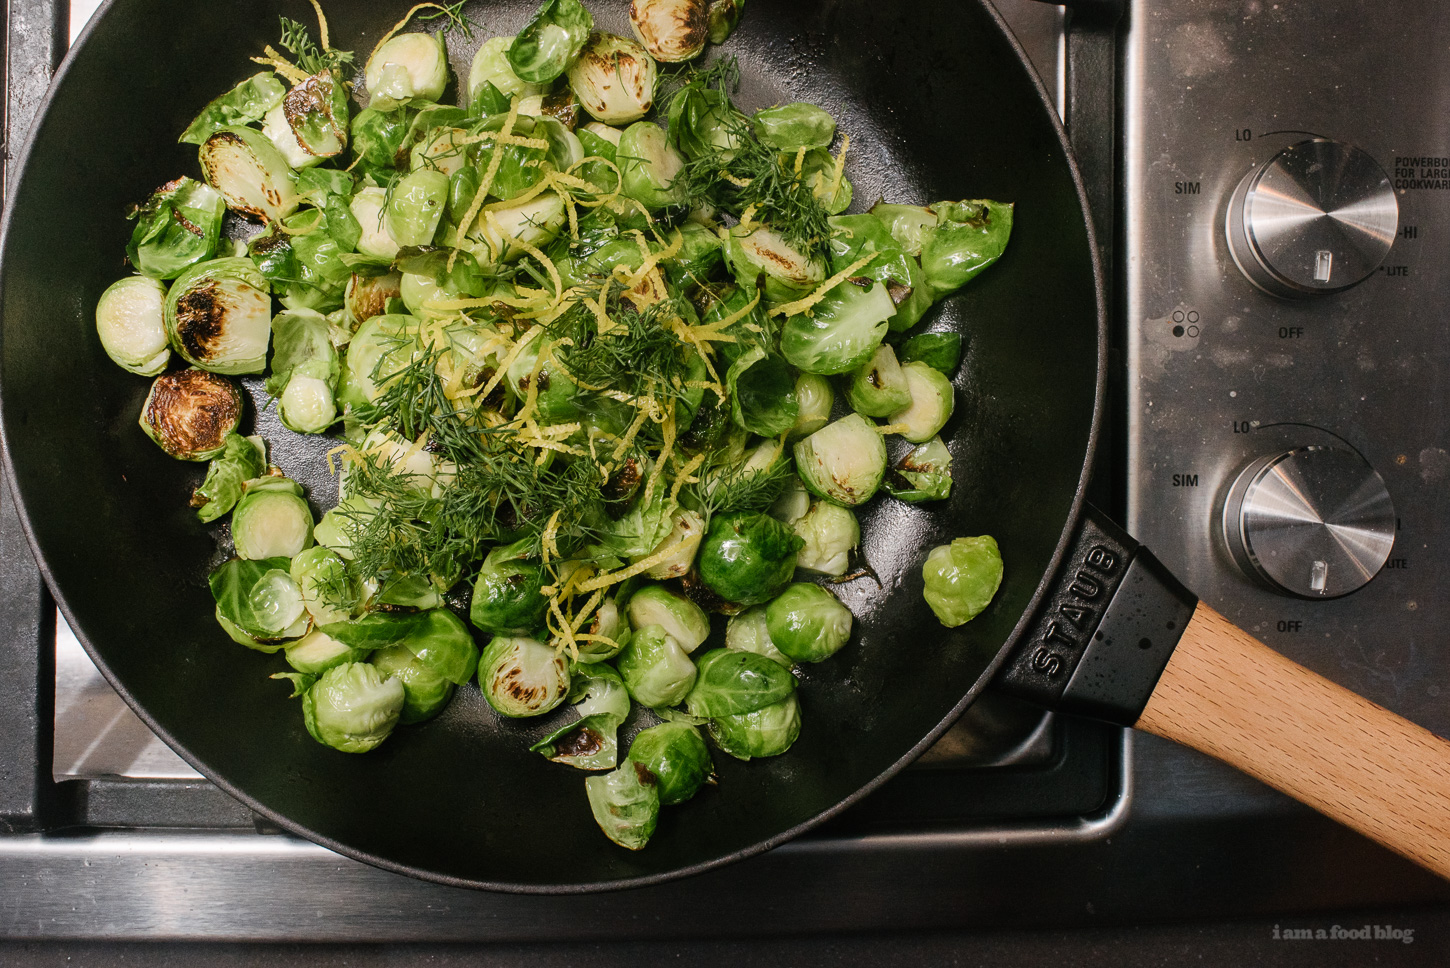 Lemon & Dill Pan Roasted Brussel Sprouts